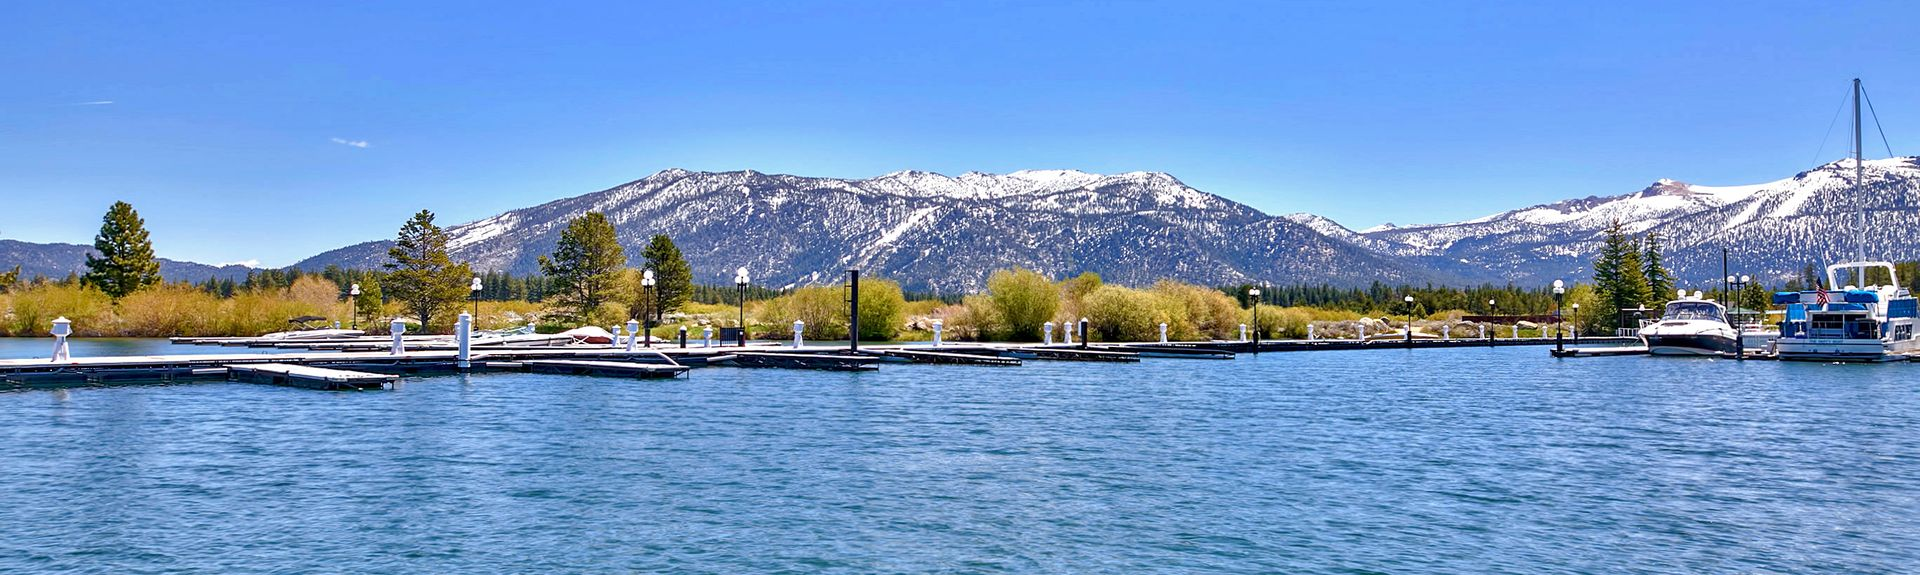 Tahoe Island, South Lake Tahoe, Kalifornia, Yhdysvallat